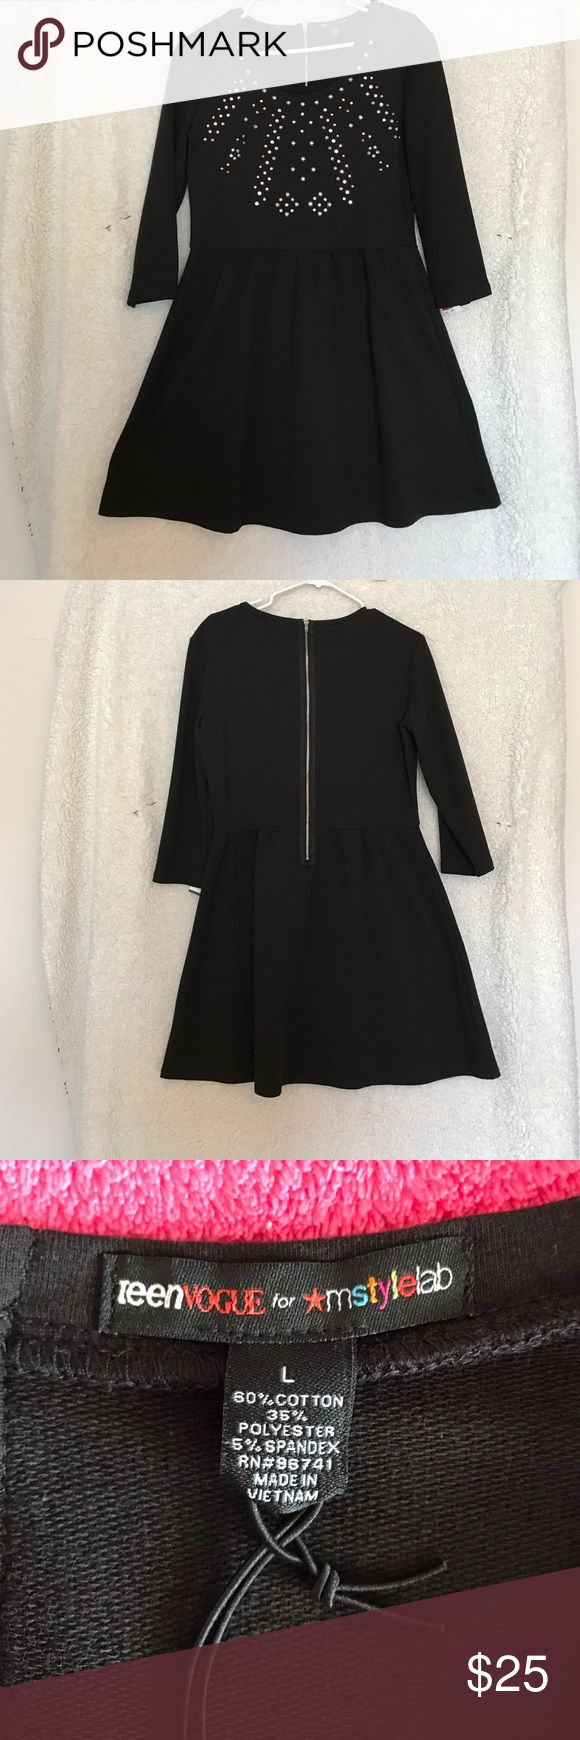 Teen Vogue Black Rhinestone Dress New With Tags Teen Vogue Black Rhinestone Dress. No Trades Please TeenVogue  Dresses Long Sleeve